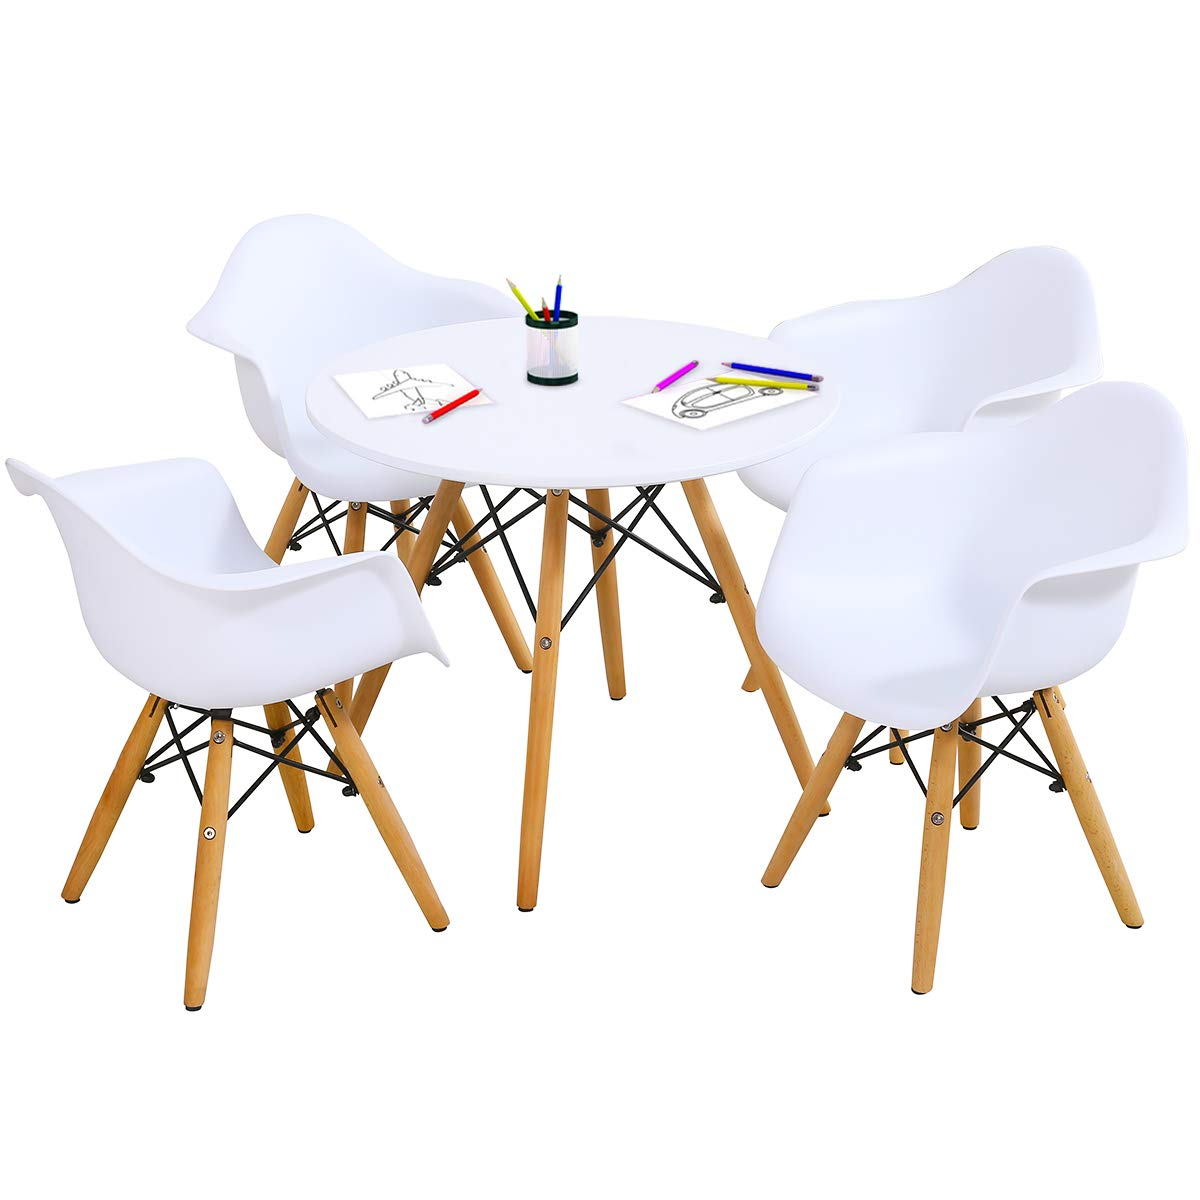 Costzon Kids Mid-Century Modern Style Table Set, Kids Table and Chair Set, Round Table with Armchairs for Toddler Children, Kids Dining Table and Chair Set (White, Table & 4 Chairs) by Costzon